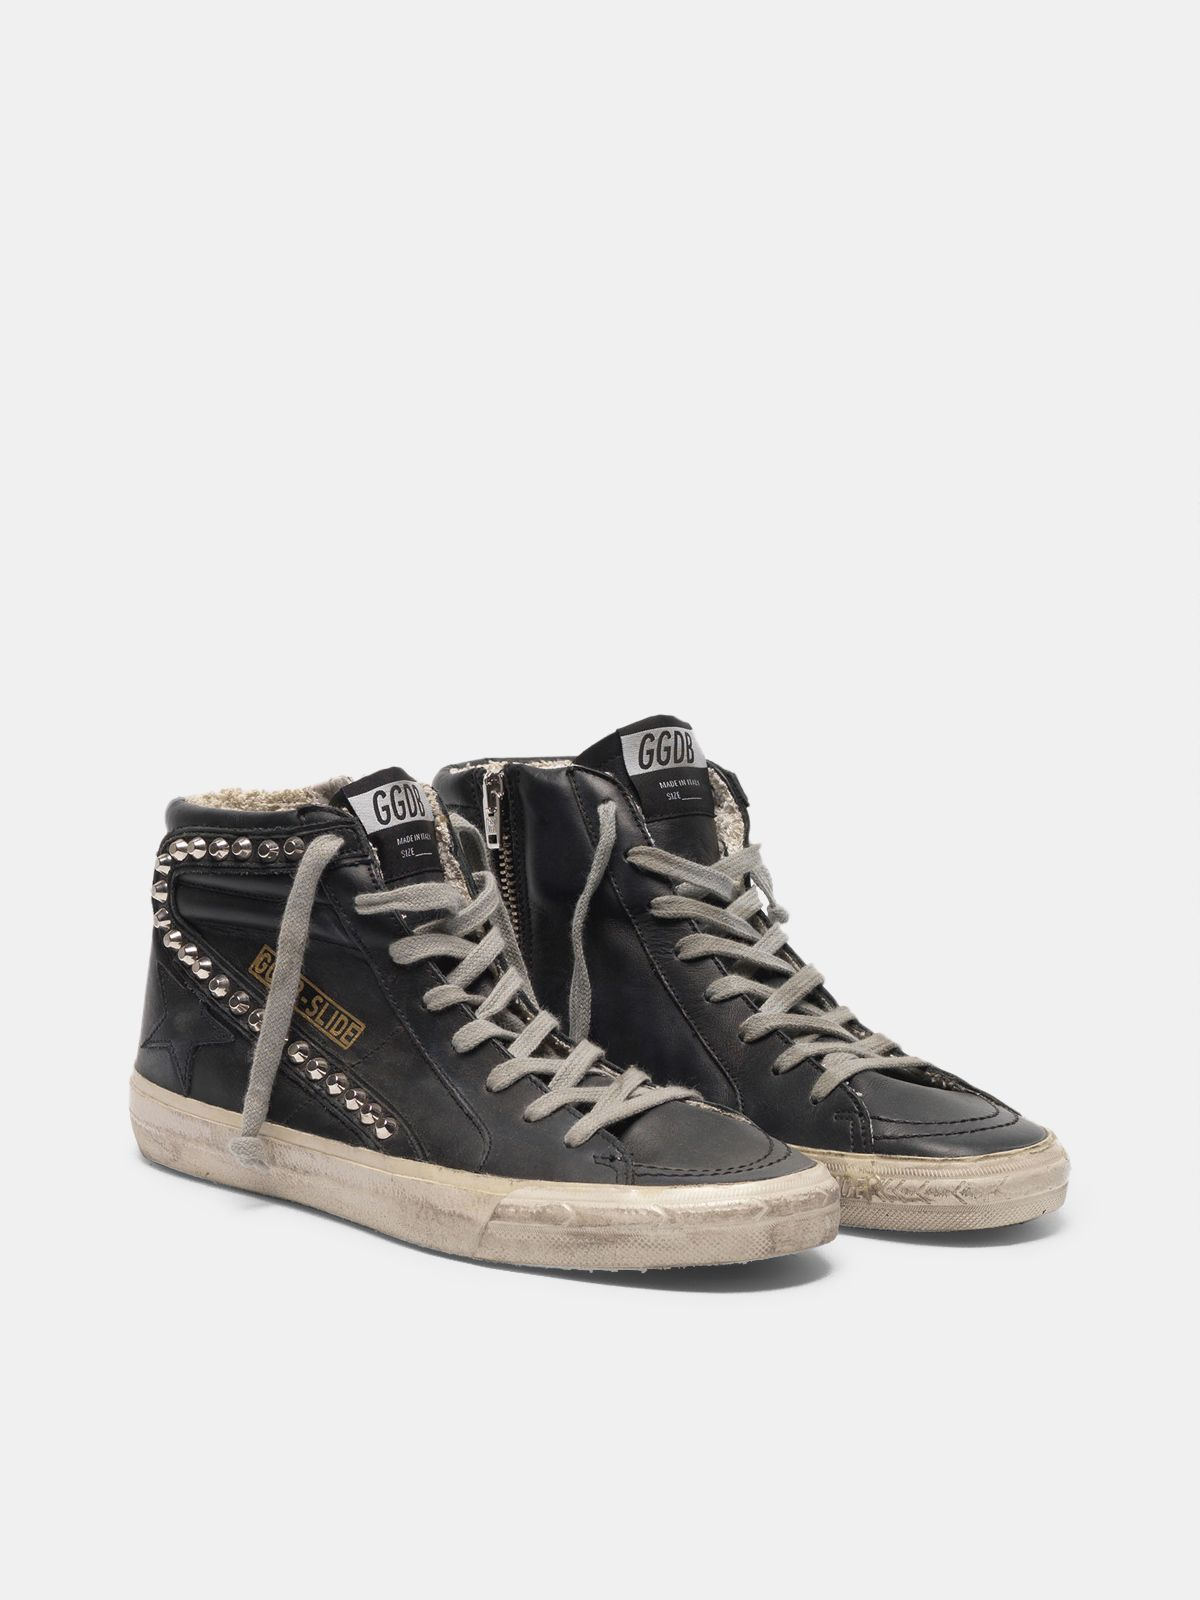 Golden Goose - Sneakers Slide con borchie applicate in